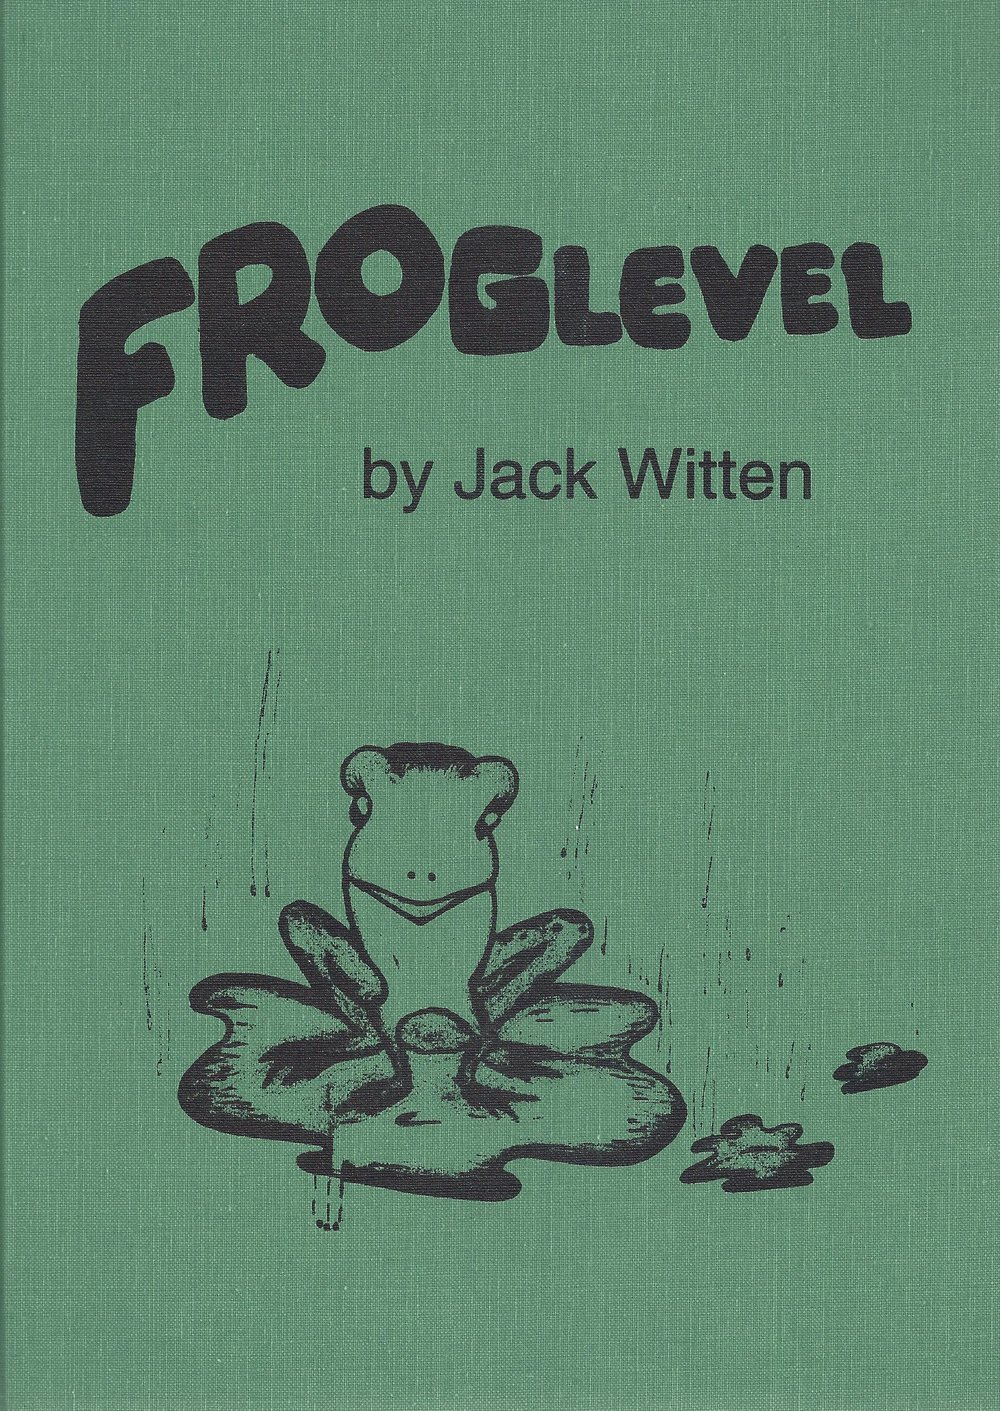 Frog Level Book Cover.jpg